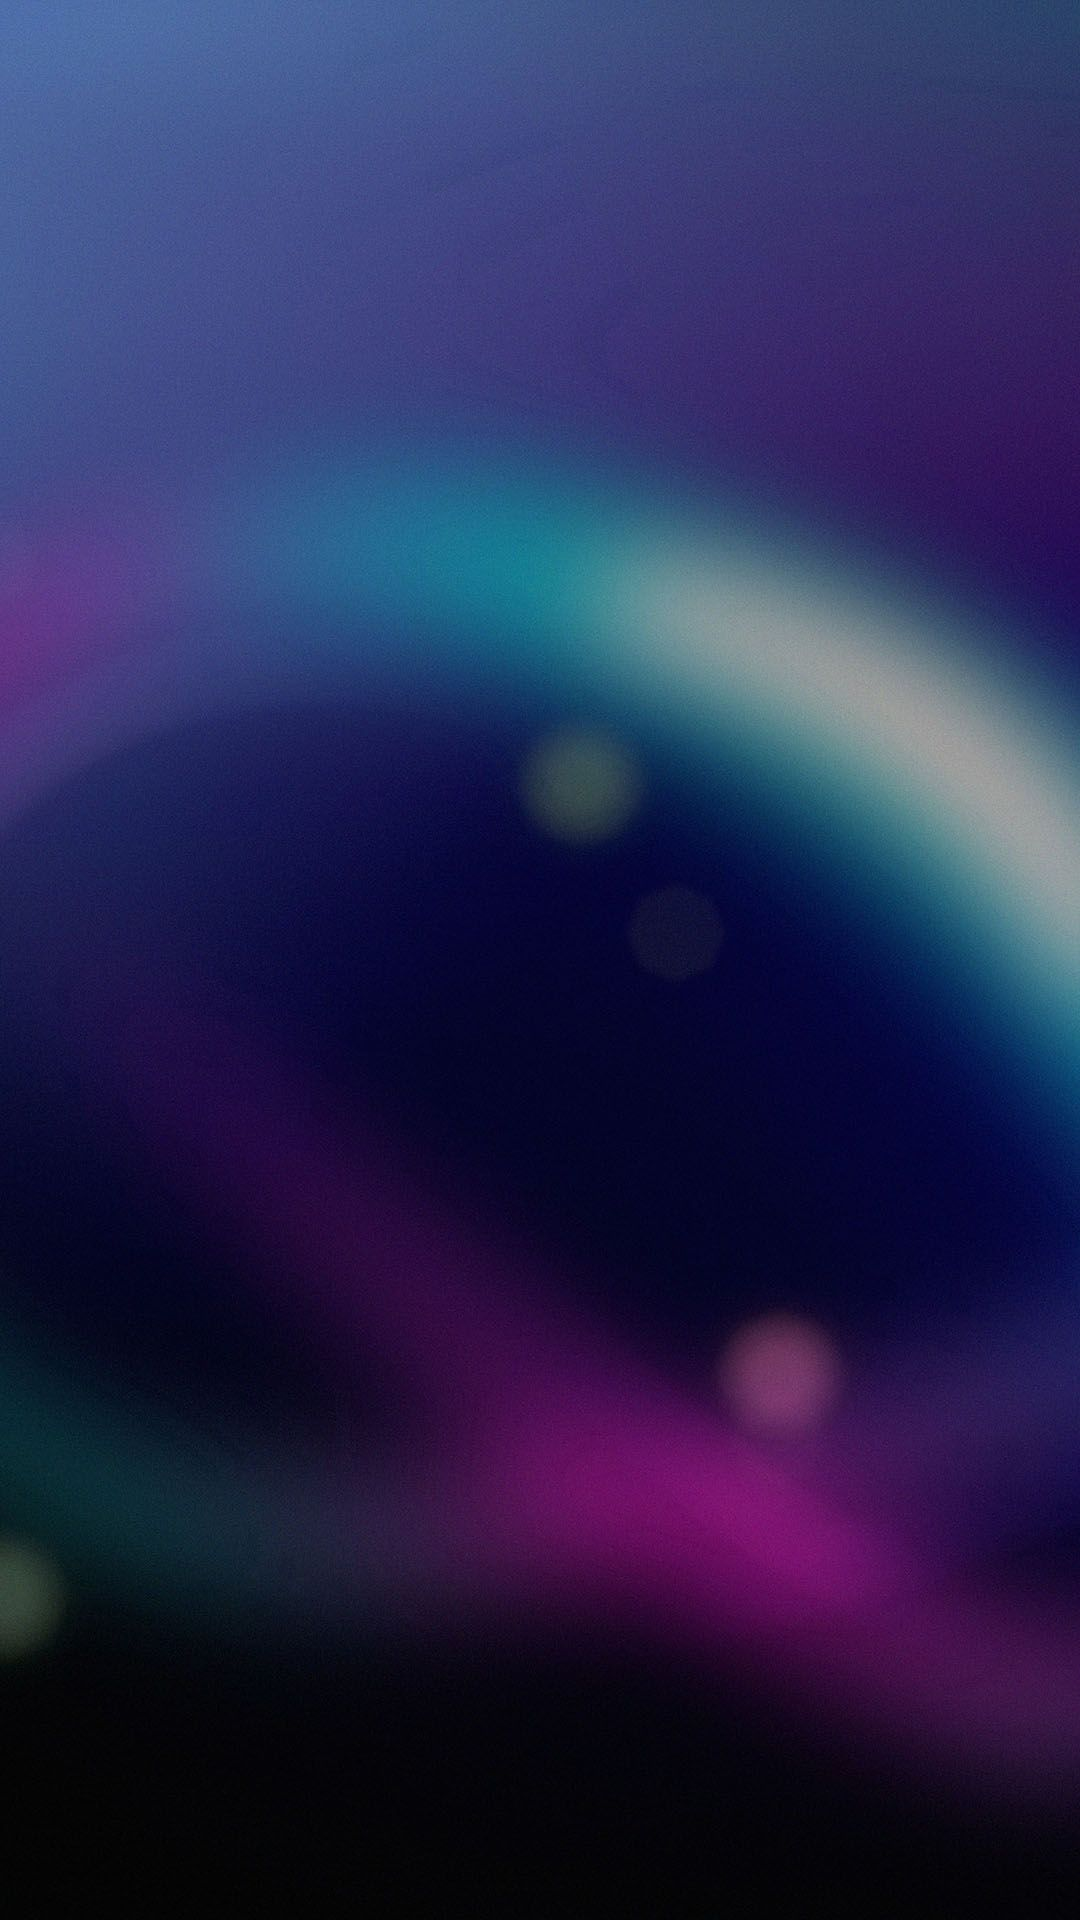 Pattern Purple And White Background Image Android Wallpaper Abstract Android Wallpaper Android Wallpaper Blue